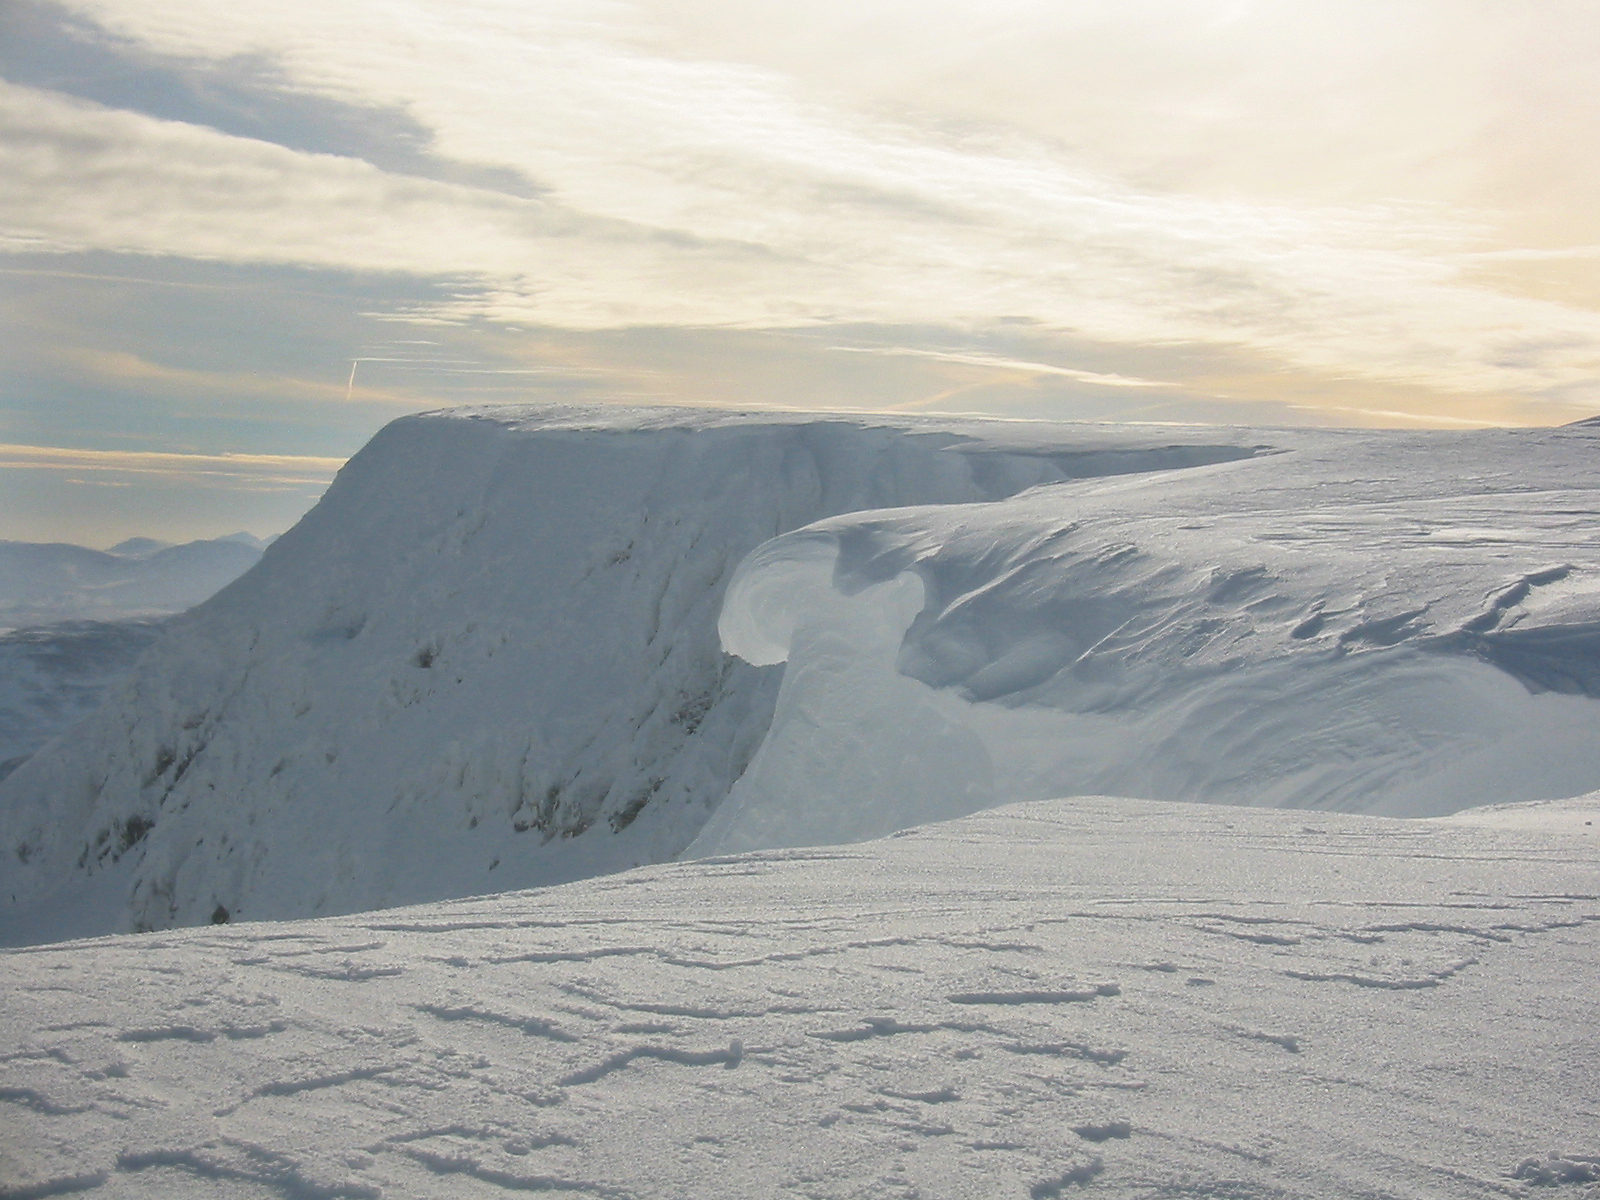 Cornices are prone to collapse late in the winter season